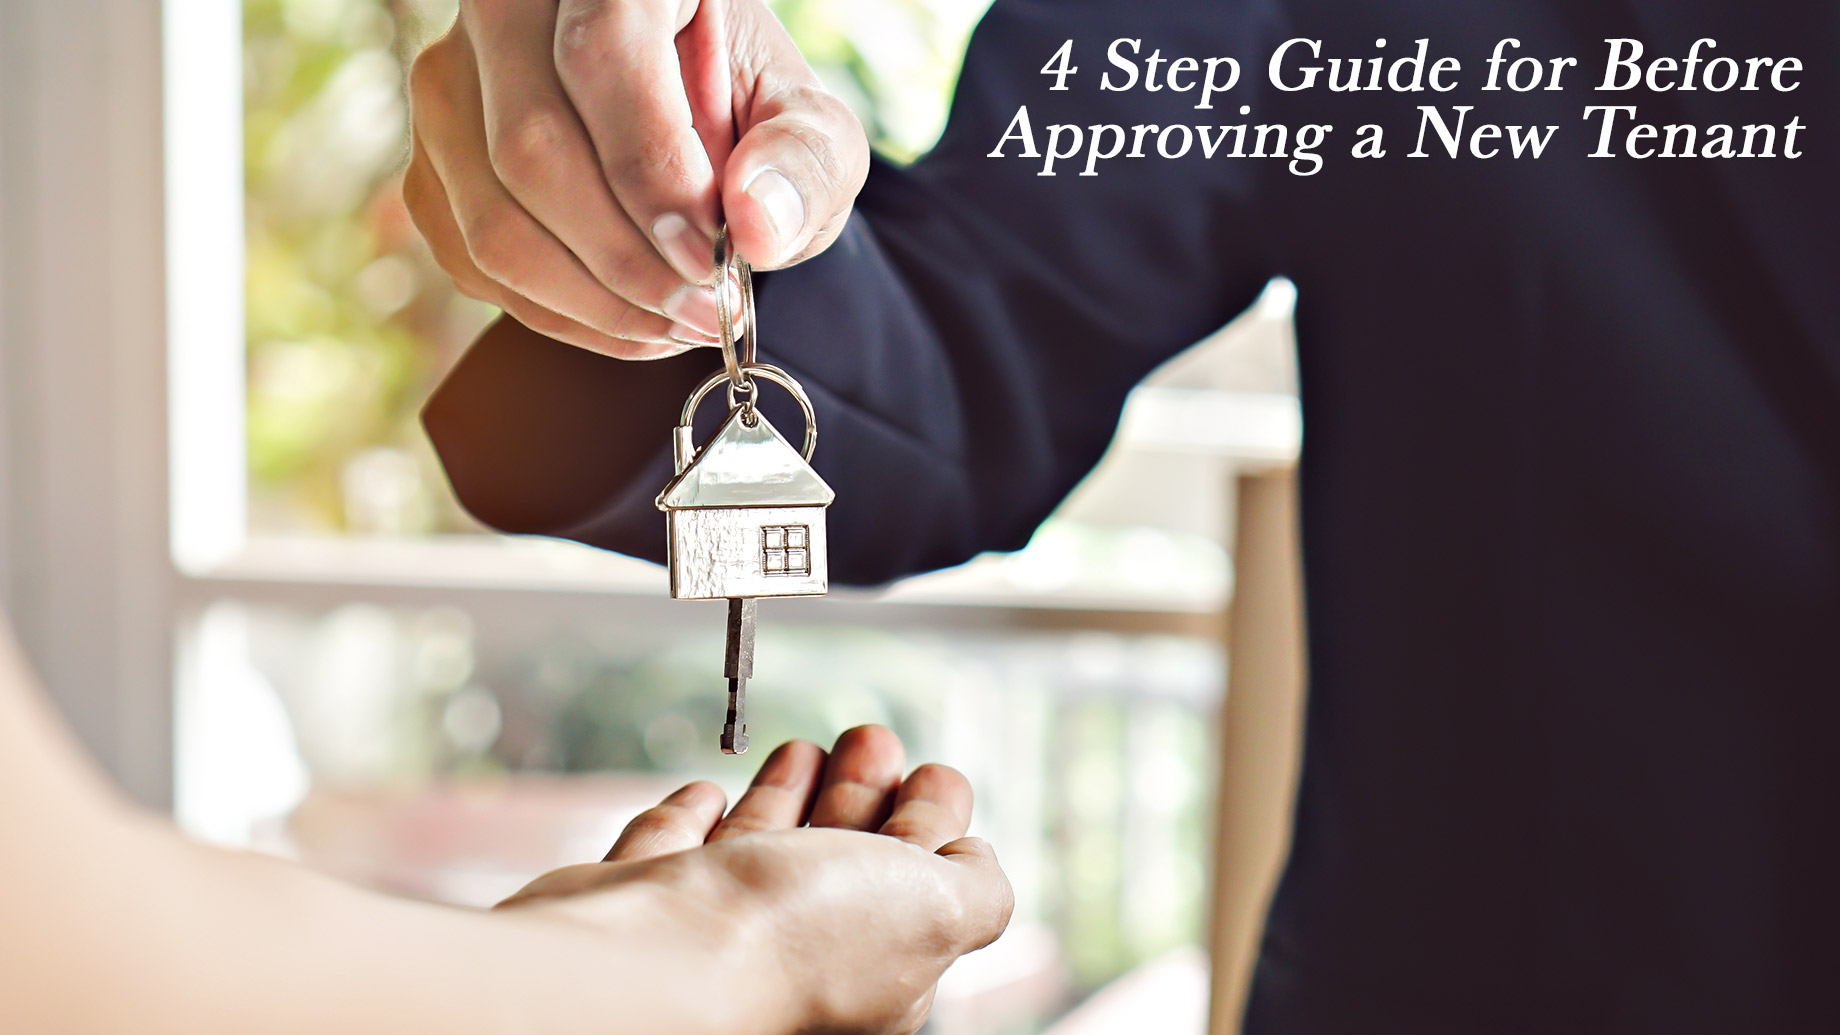 4 Step Guide for Before Approving a New Tenant